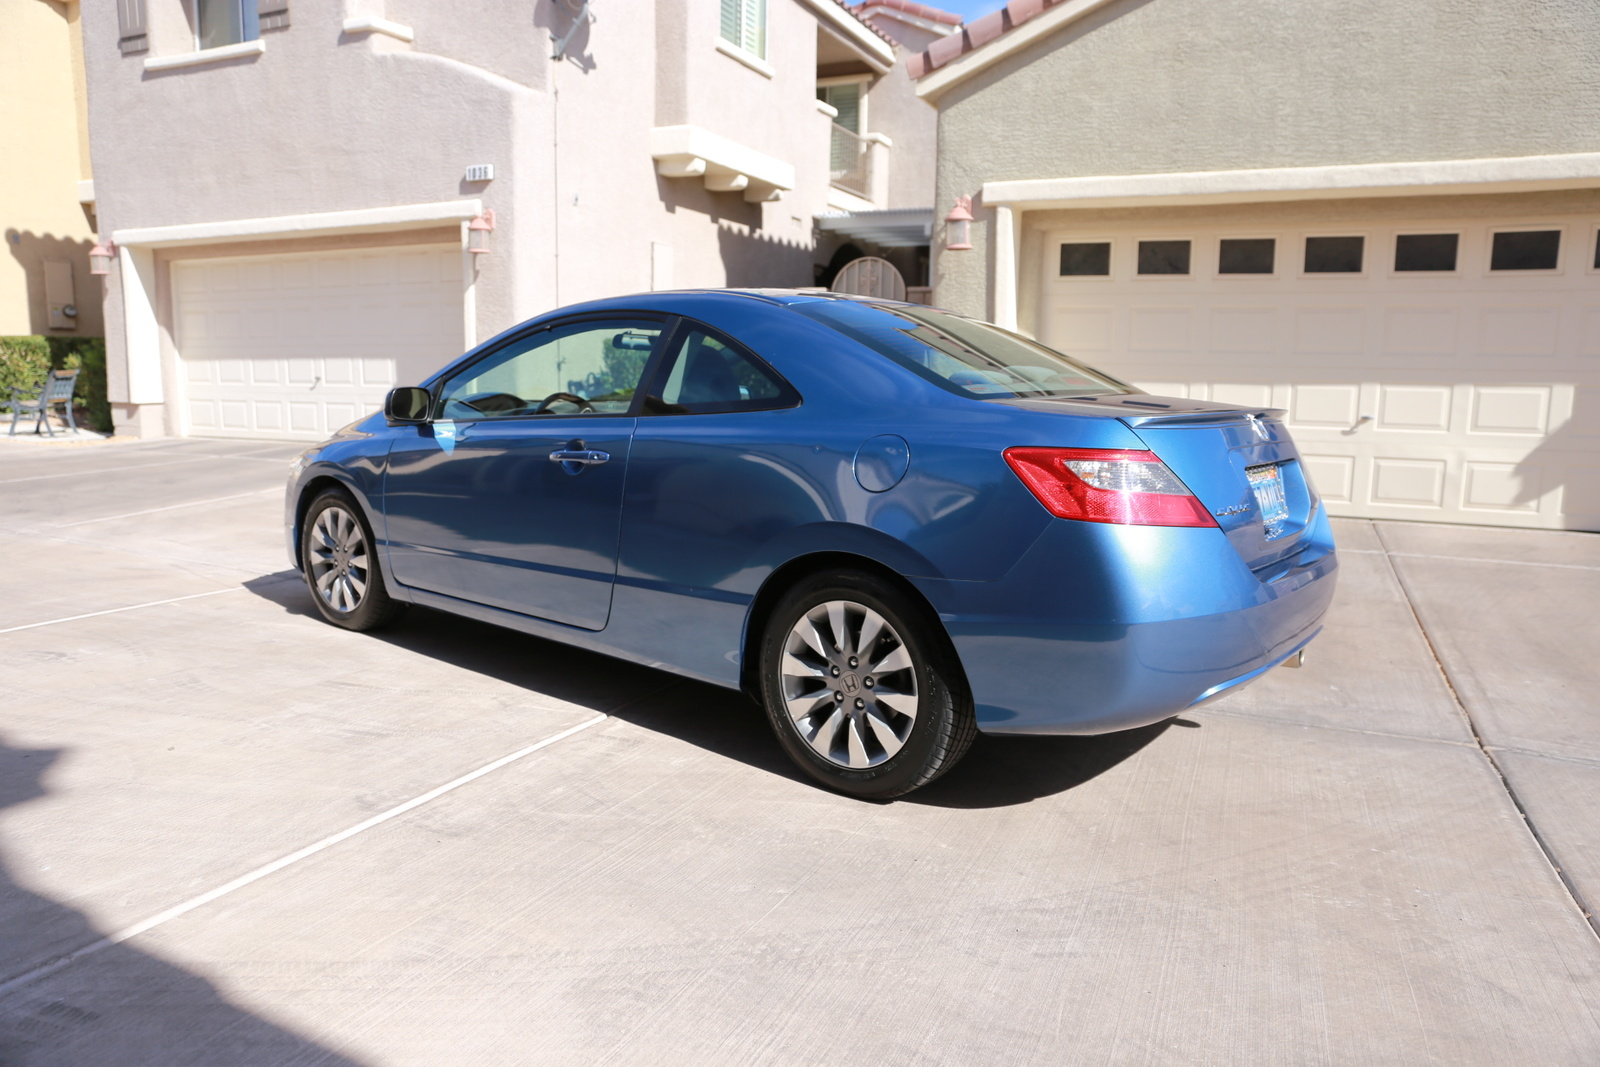 2010 honda civic coupe pictures cargurus